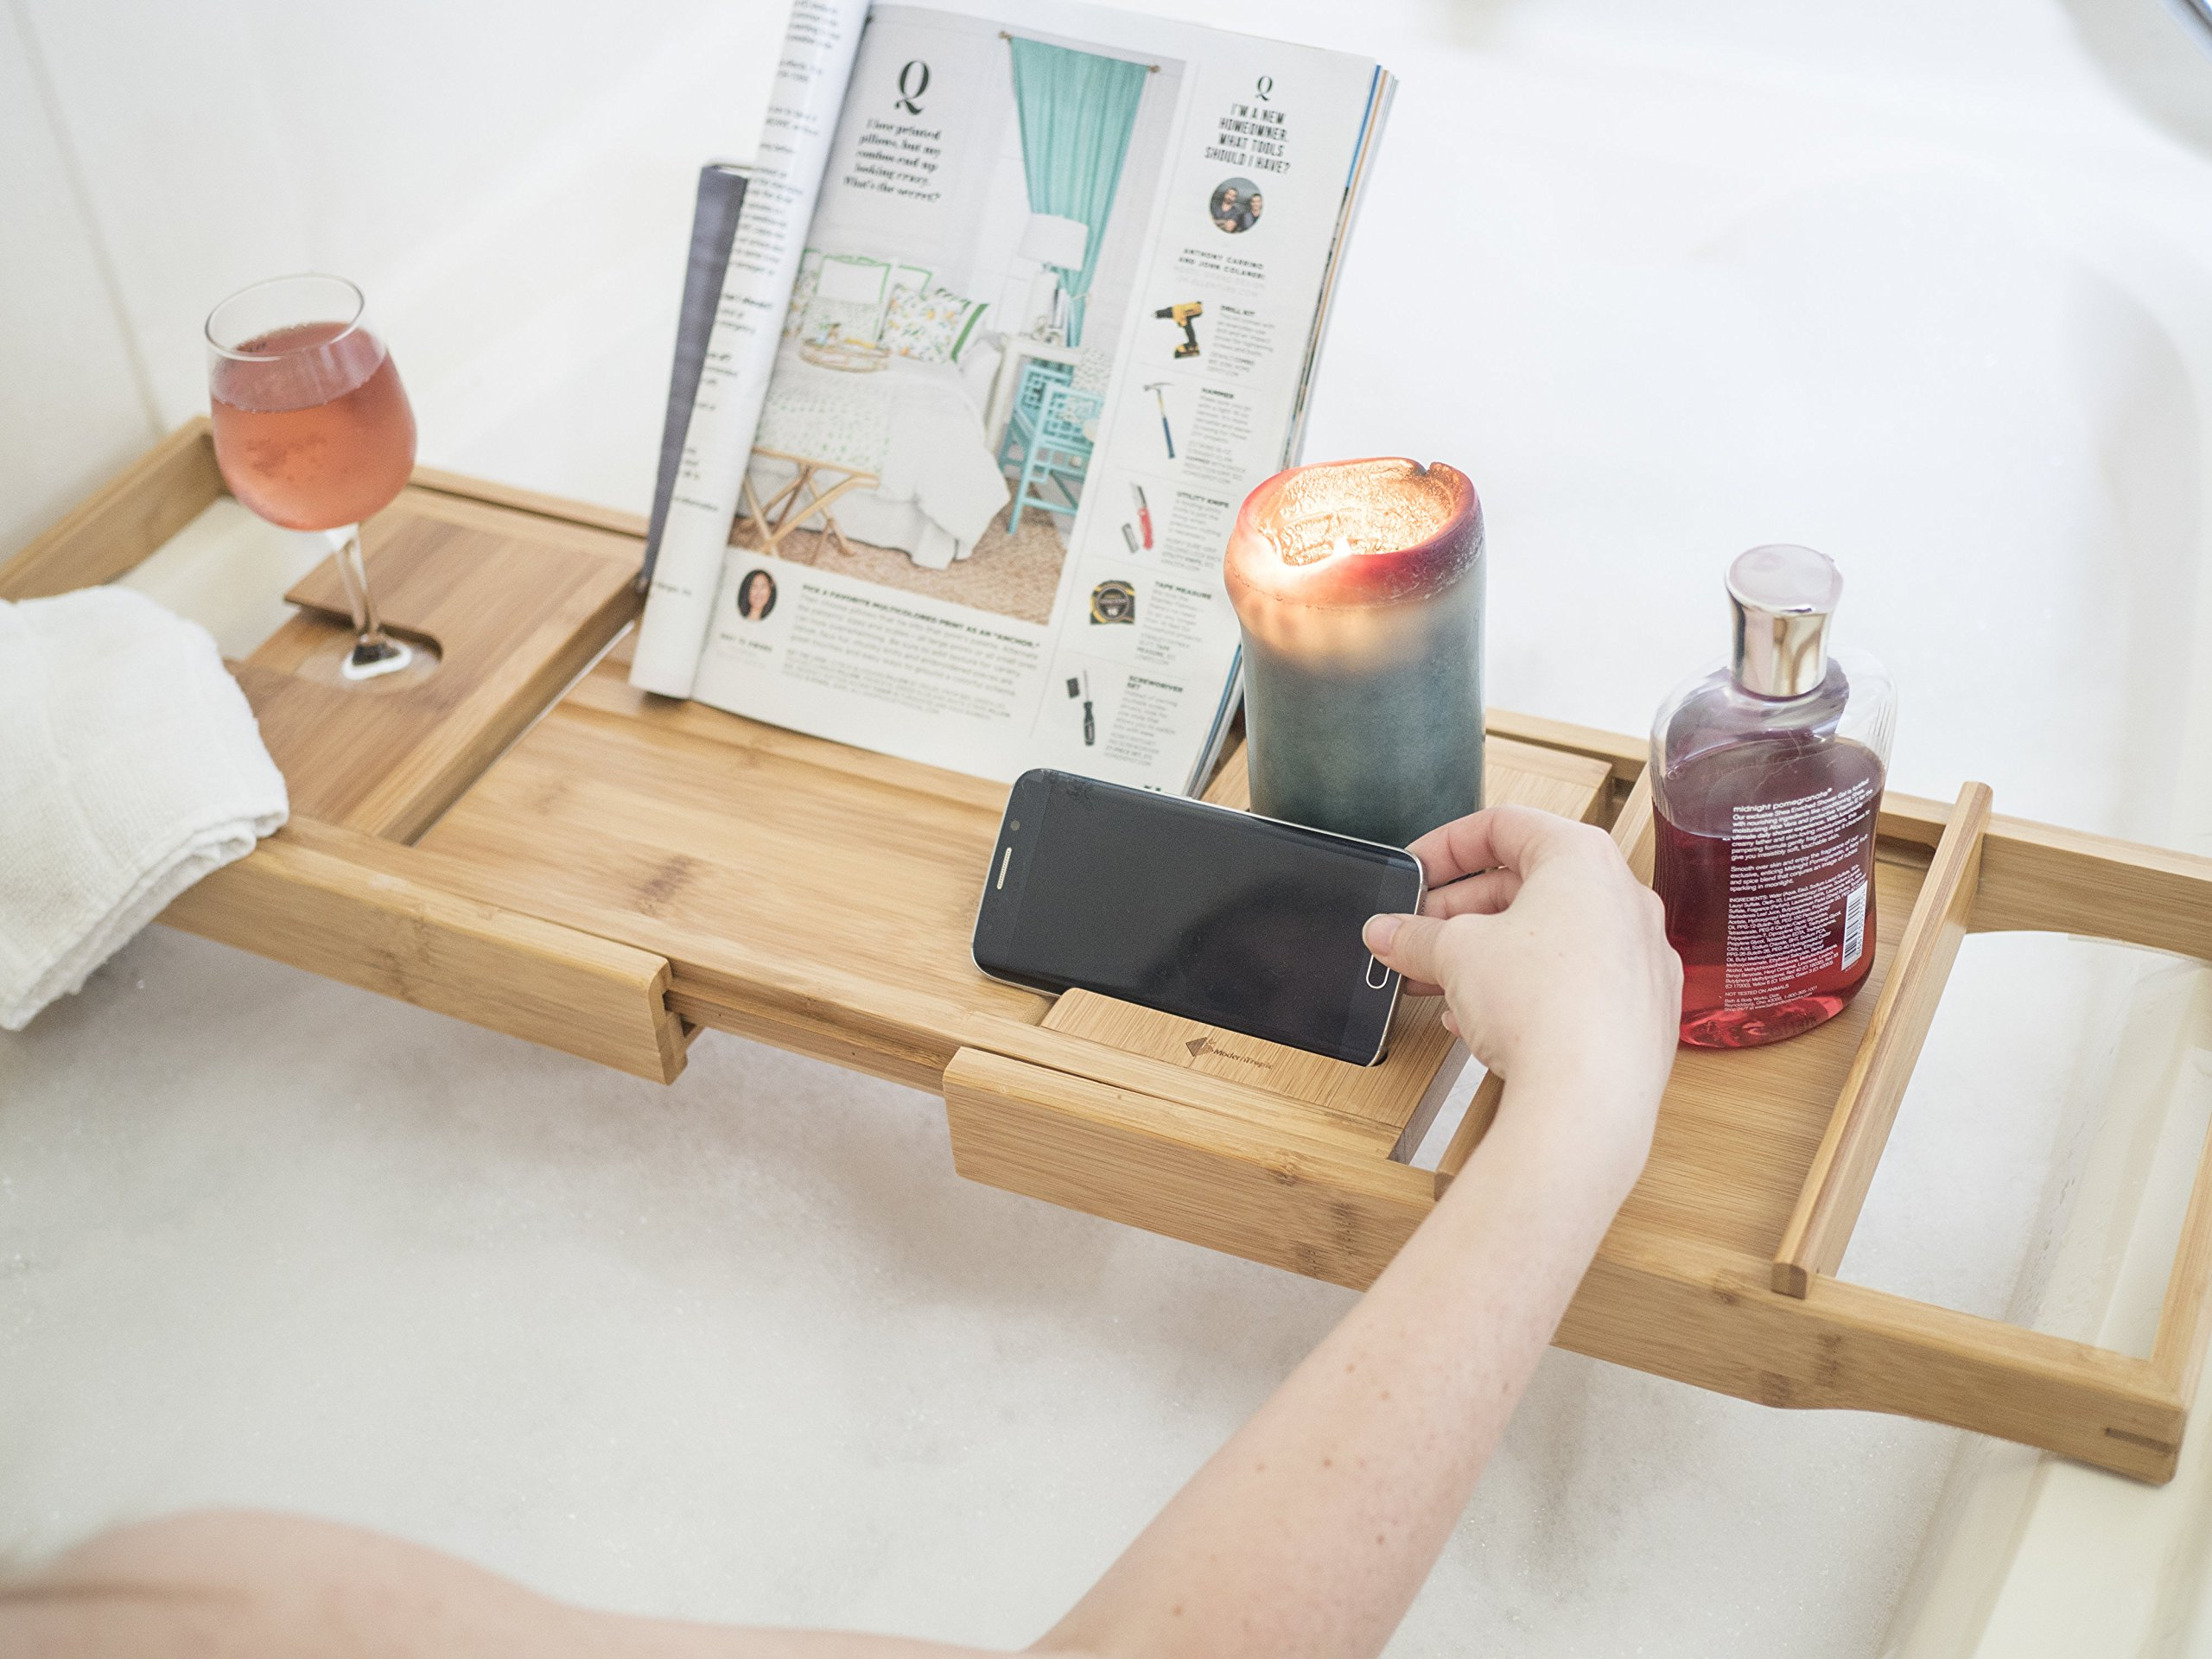 ModernTropic Home and Spa Bamboo Bathtub Caddy and Tray Expandable Non-Slip Wooden Bath Tray Securely Holds Drinks, Book/Tablet, Accessories, Phone by ModernTropic (Image #2)